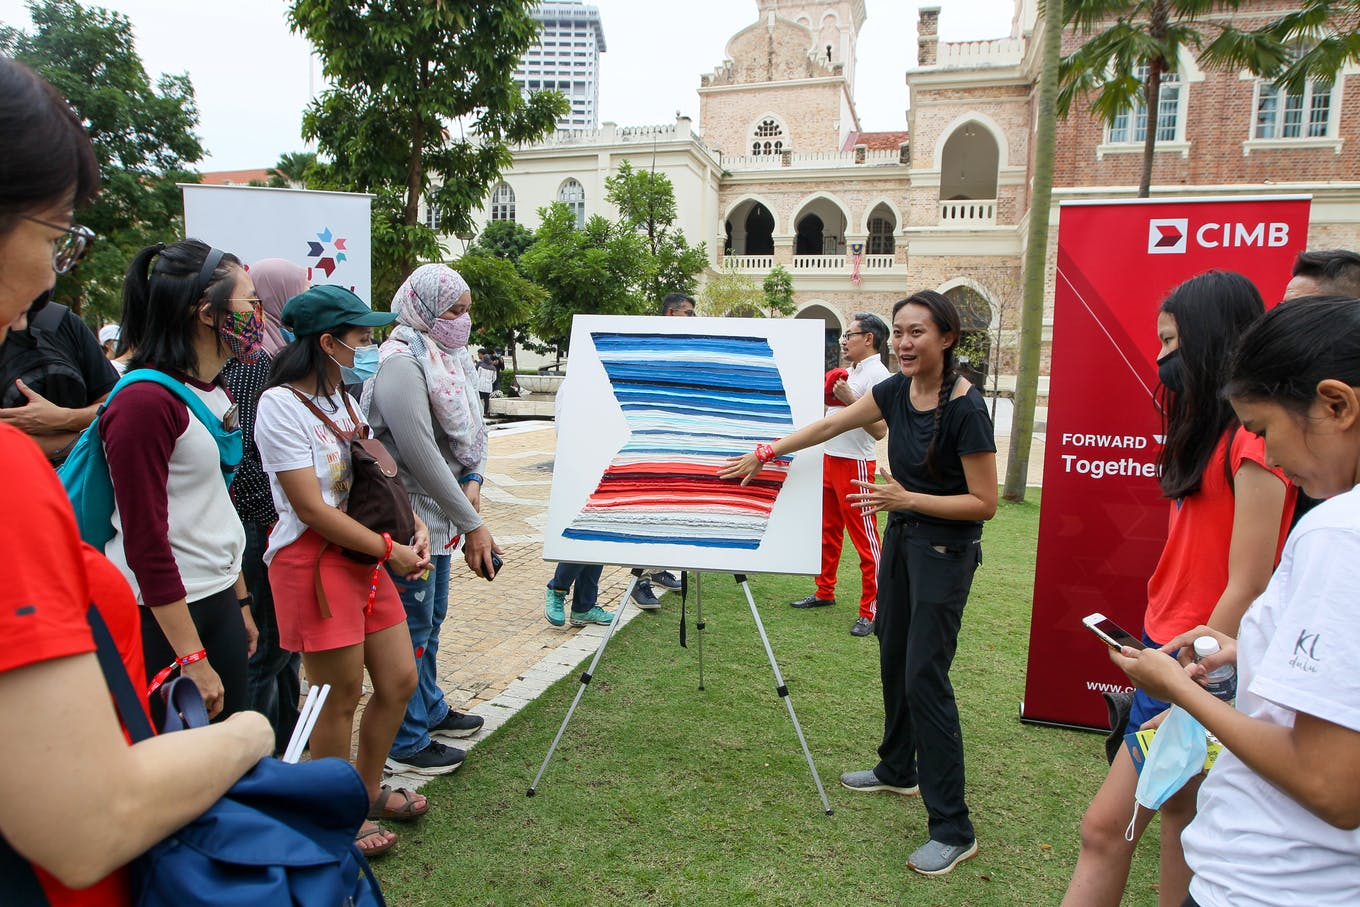 Luanne Sieh, CIMB's head of sustainability, explaining the 'warming stripe' history of global warming.